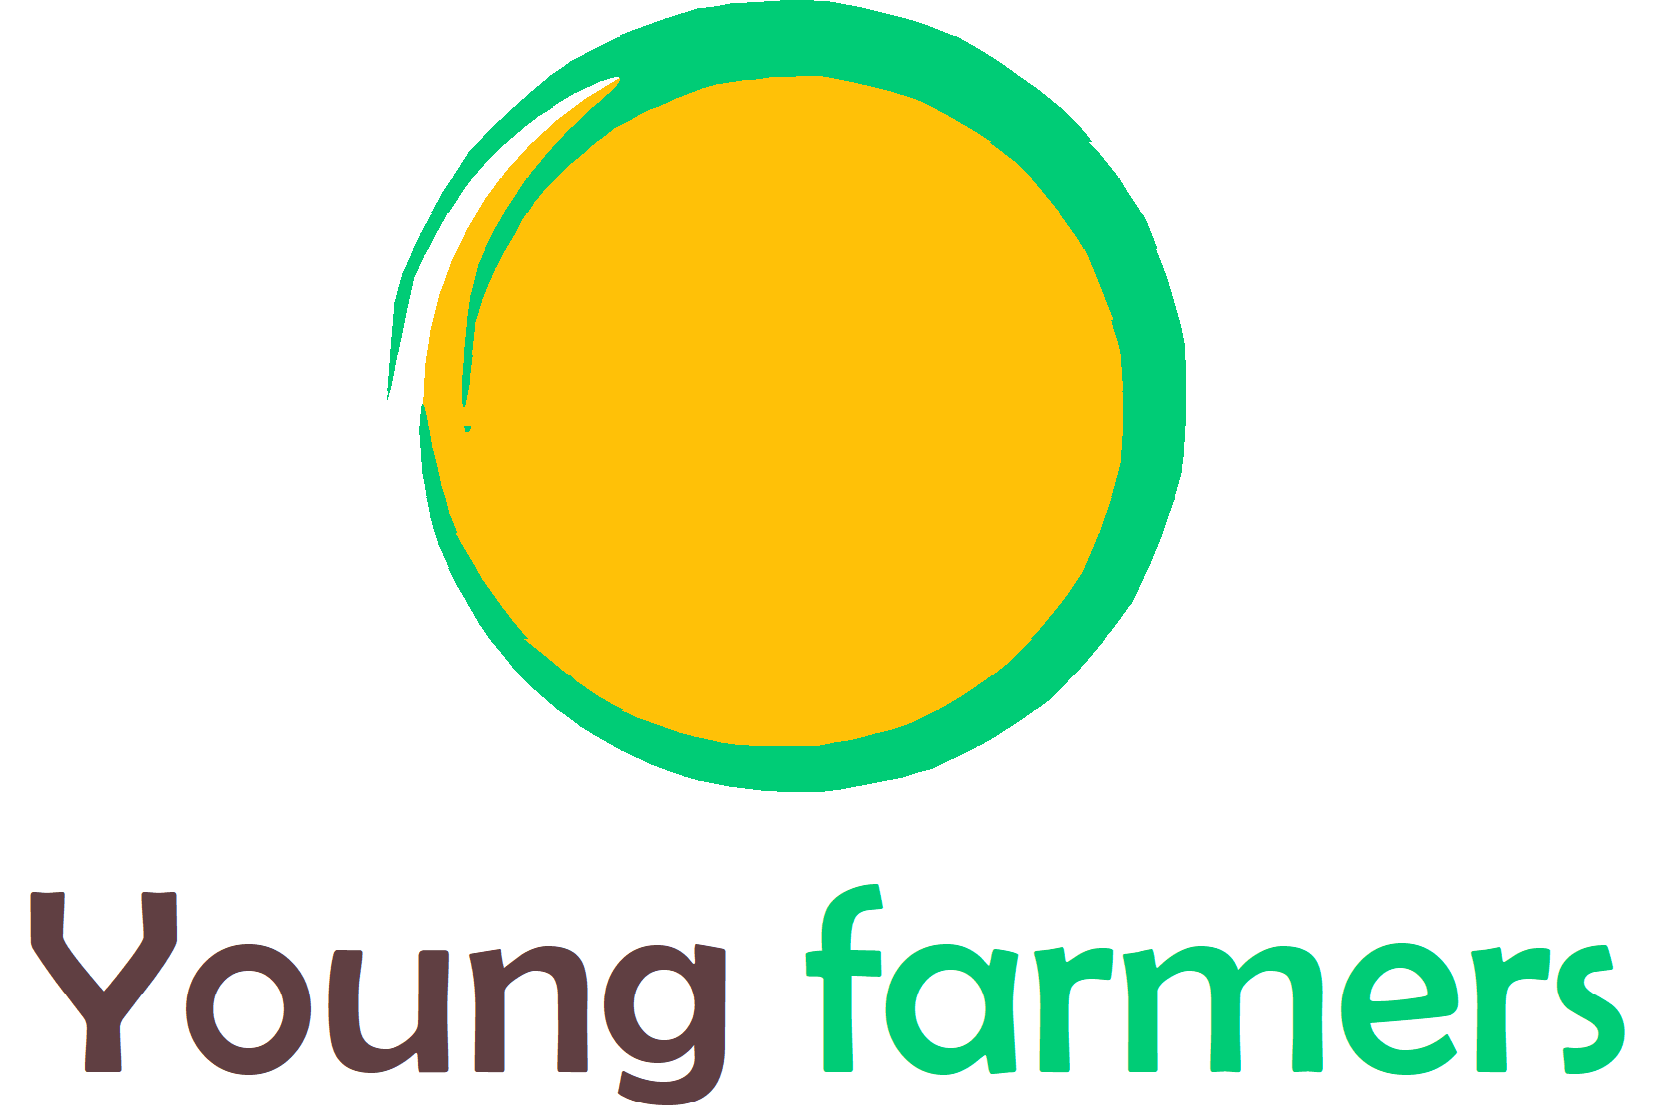 Supporting and Boosting the Competitiveness of EU Young Farmers: CIRCLE joined the second Transnational Project Meeting of YOUNG FARMERS